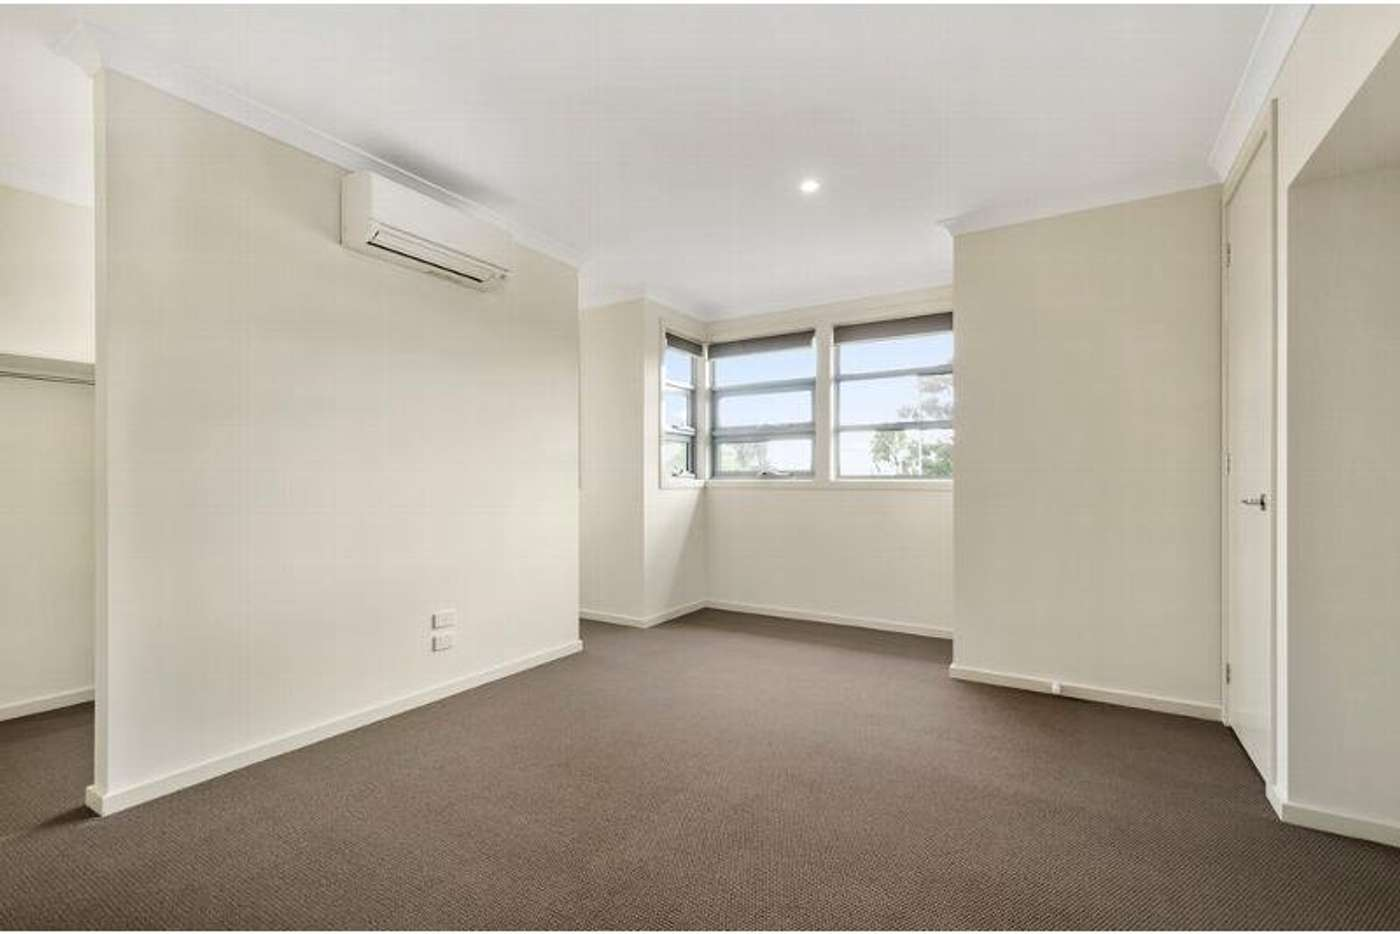 Sixth view of Homely townhouse listing, 453A Geelong Road, Yarraville VIC 3013